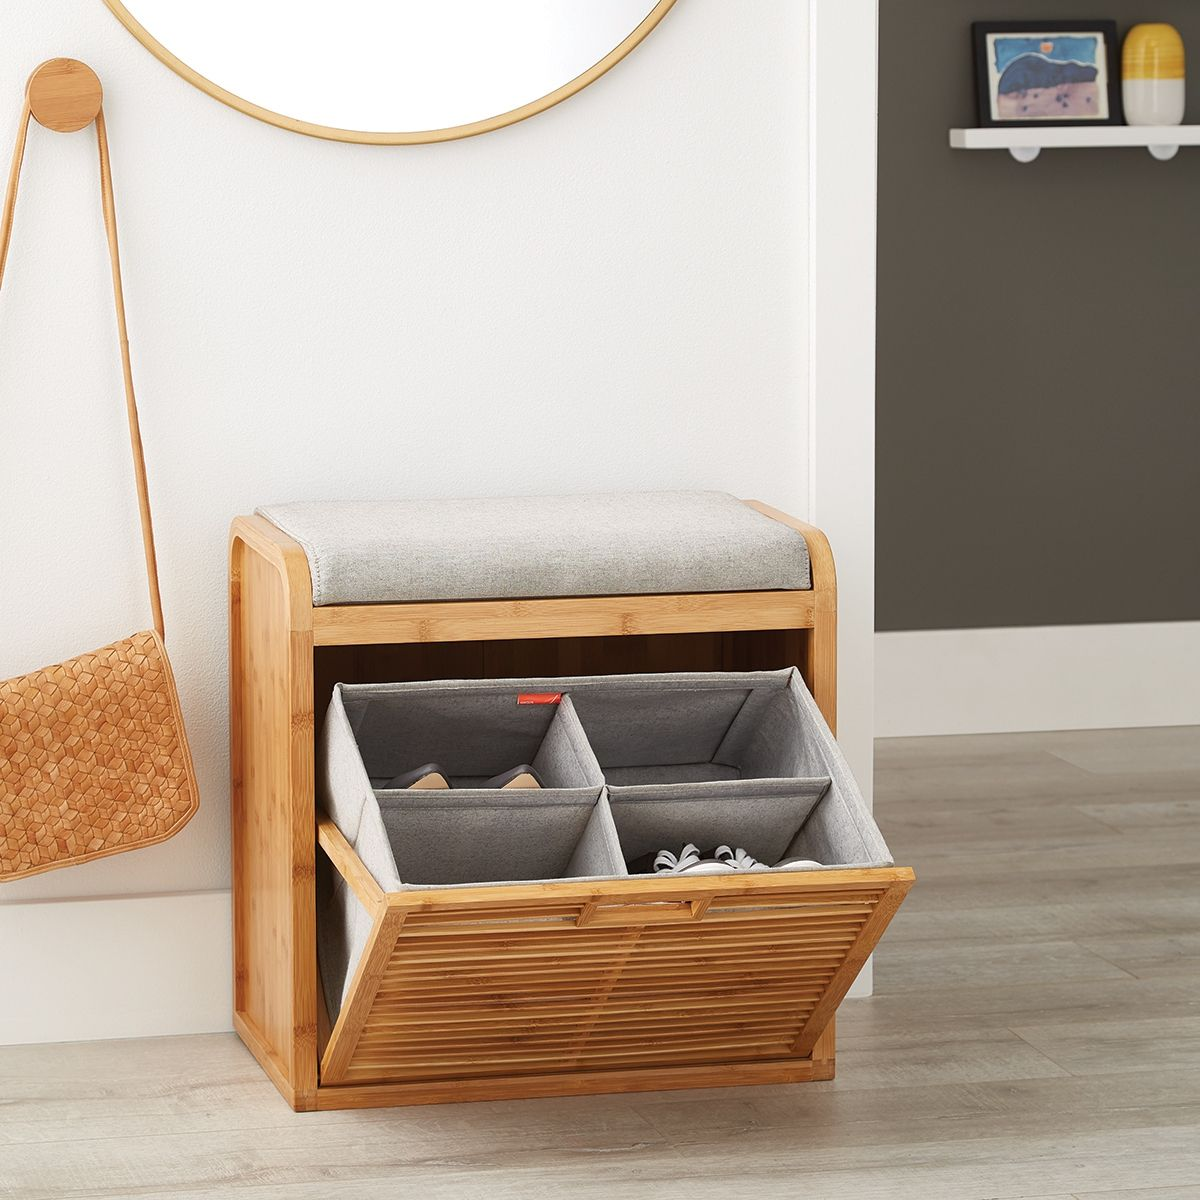 Imagine Coming Home To An Organized Clutter Free Beautifully Styled Entryway It S Possible Add Some Entryway Shoe Storage Bench With Storage Storage Bench